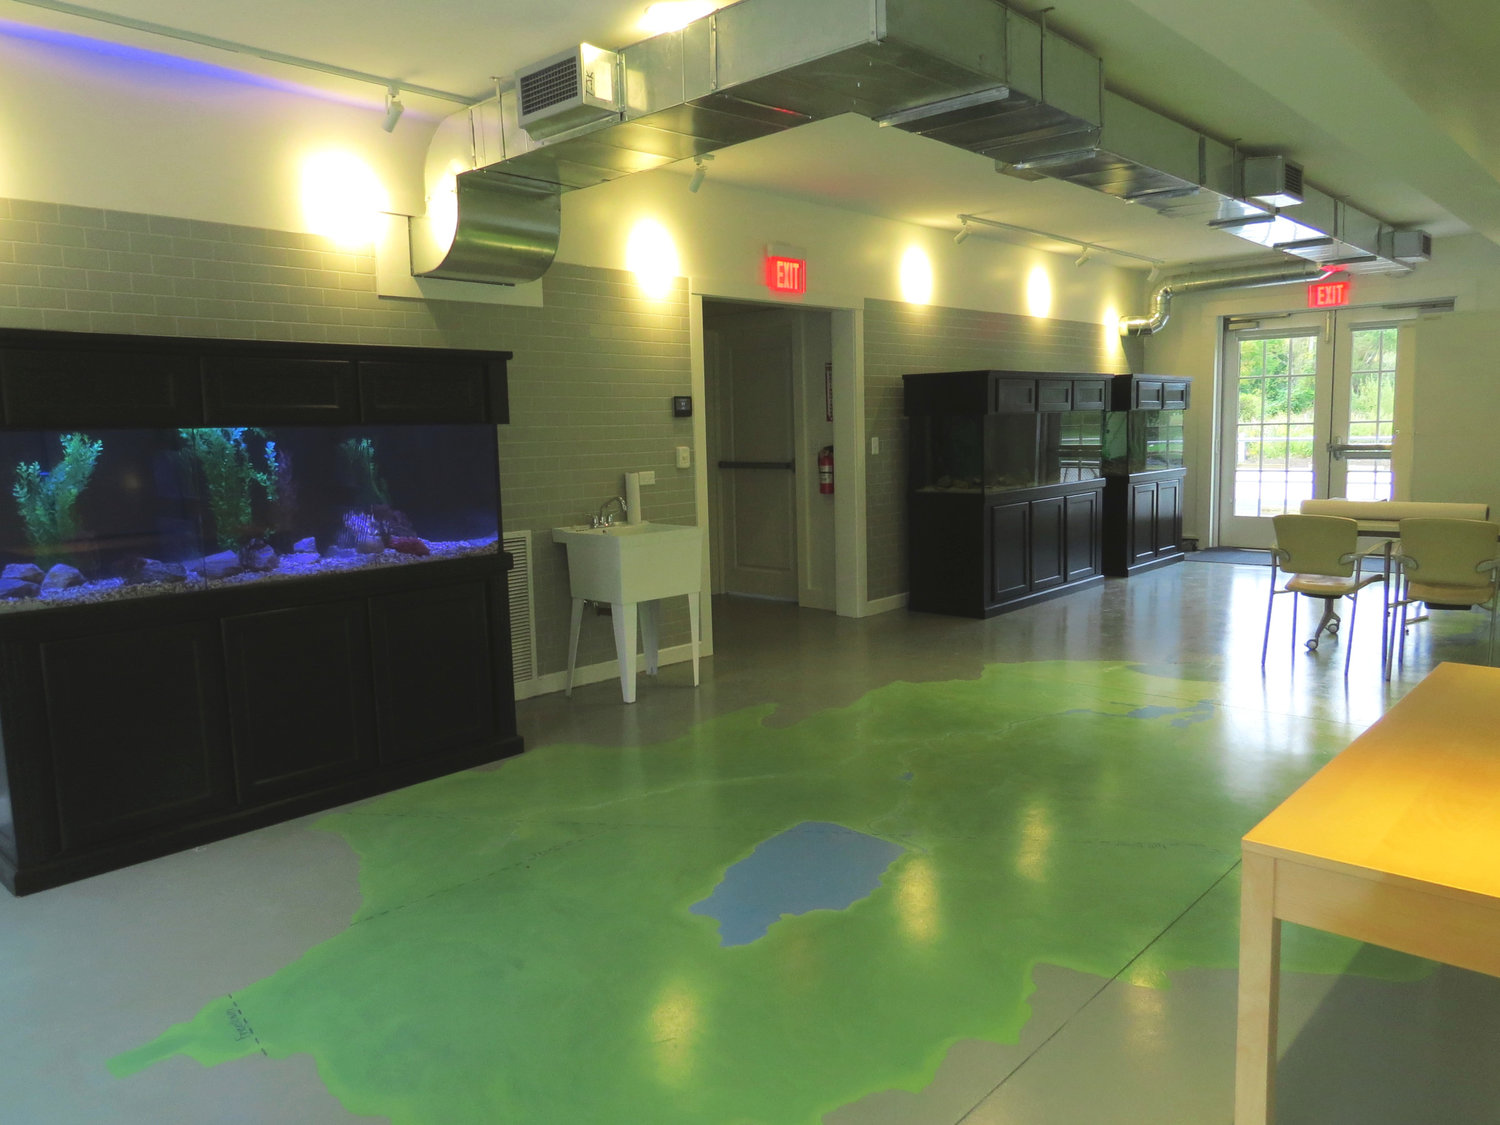 First floor aquariums feature local fish and plants. The floor illustrates the river's watershed.